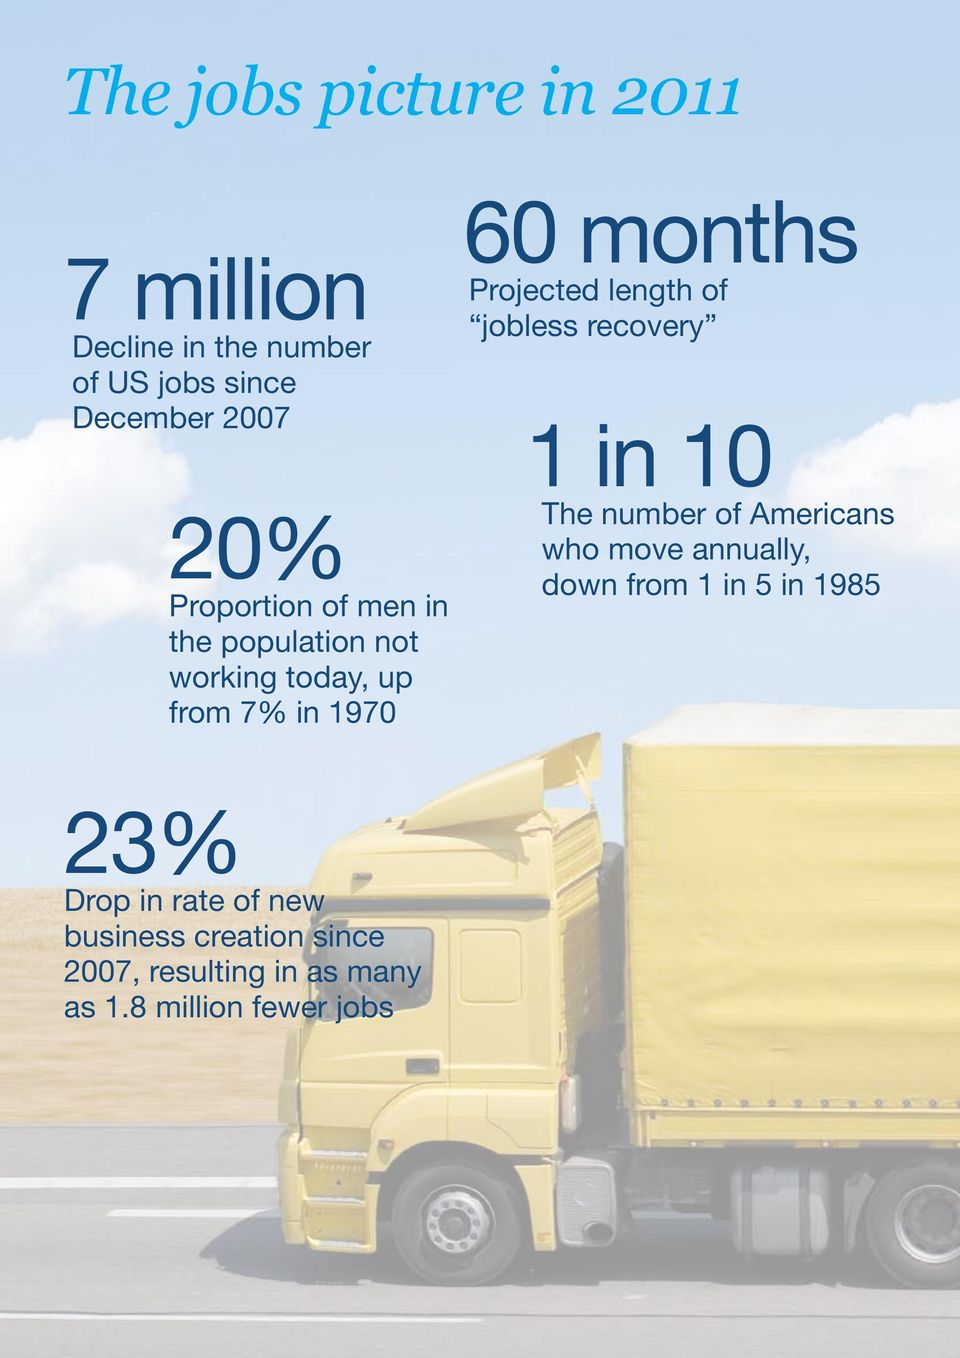 jobless recovery 1 in 10 The number of Americans who move annually, down from 1 in 5 in 1985 23%